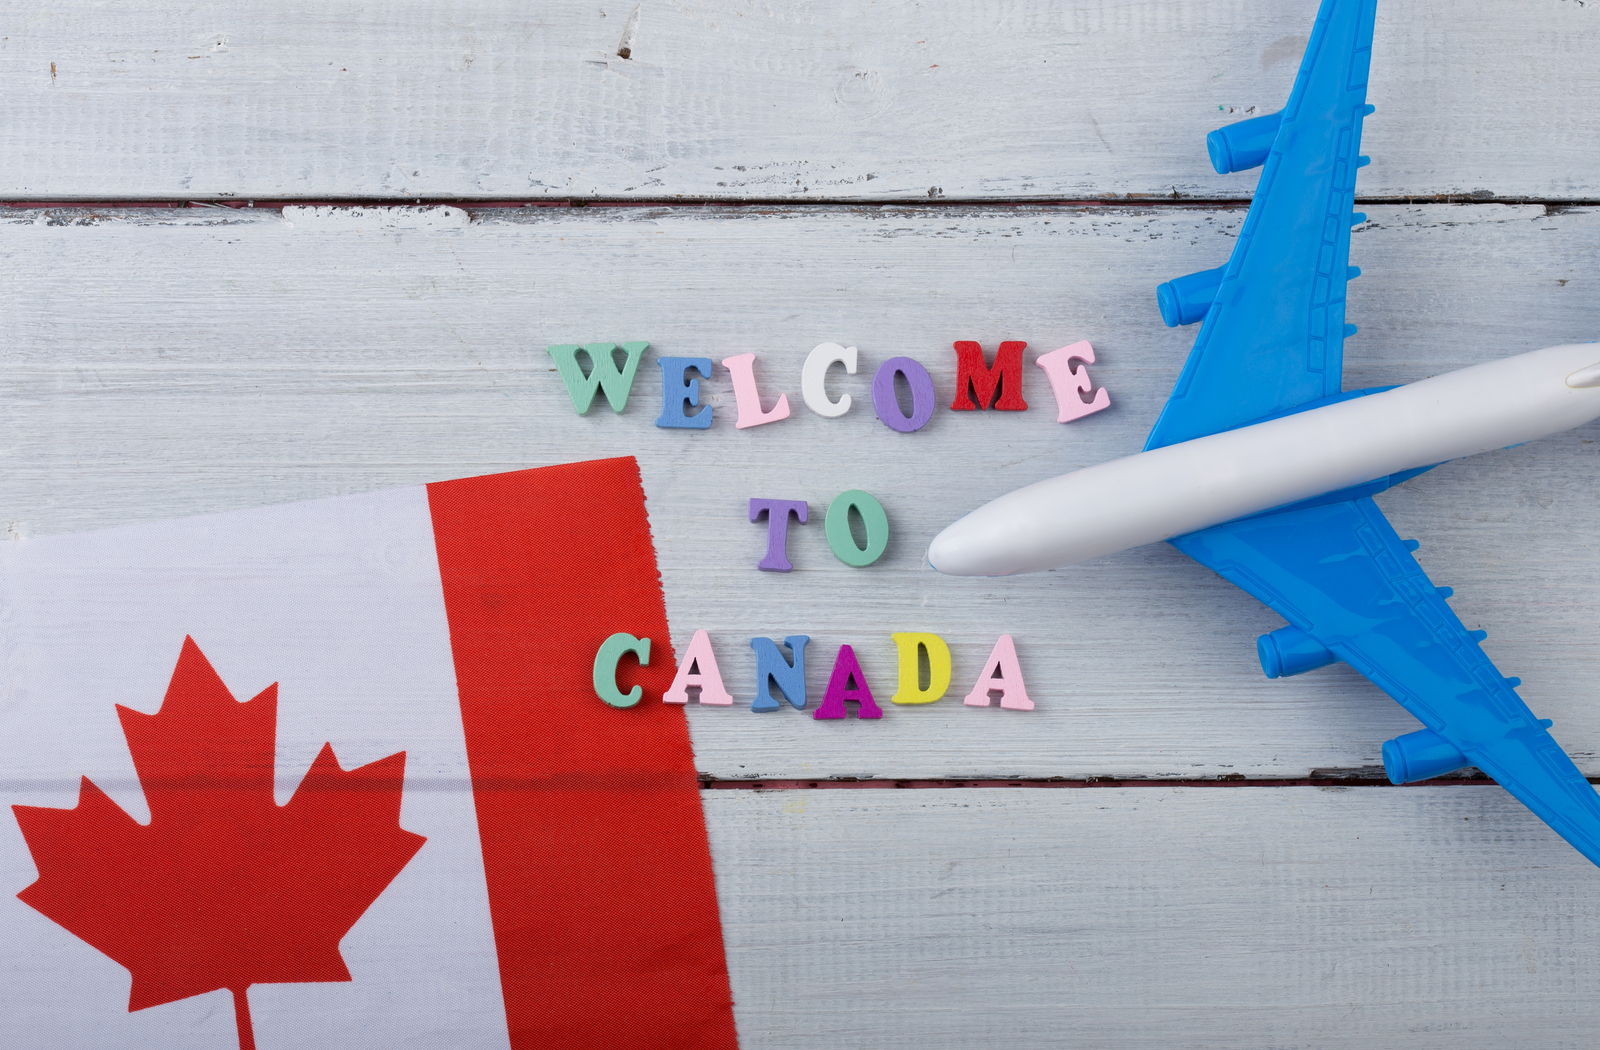 Canadian flag, plane, and Welcome to Canada wording